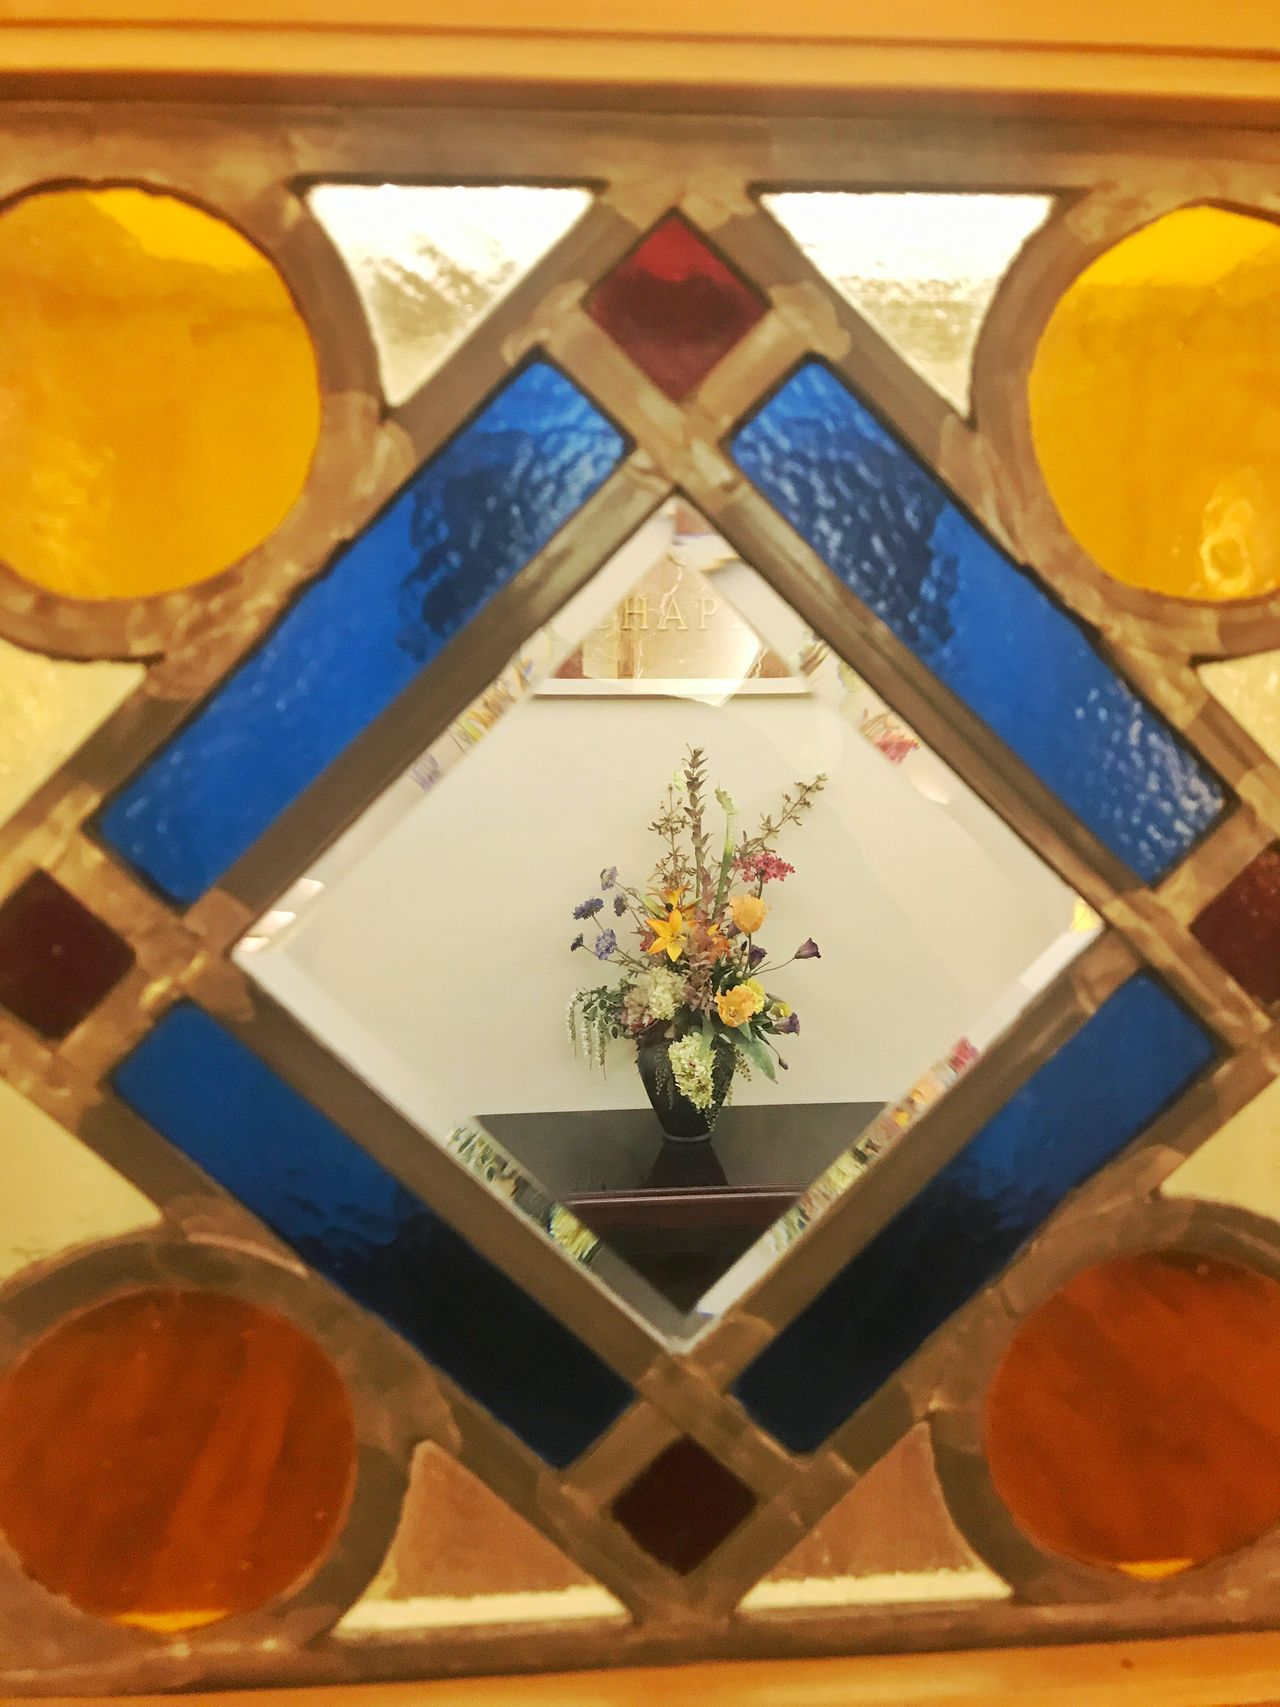 Stained Glass and bouquet Leaded Glass Window Diamond Hospital Chapel Interior Views Bouquet Of Flowers Stained Glass Indoors  No People Close-up Day